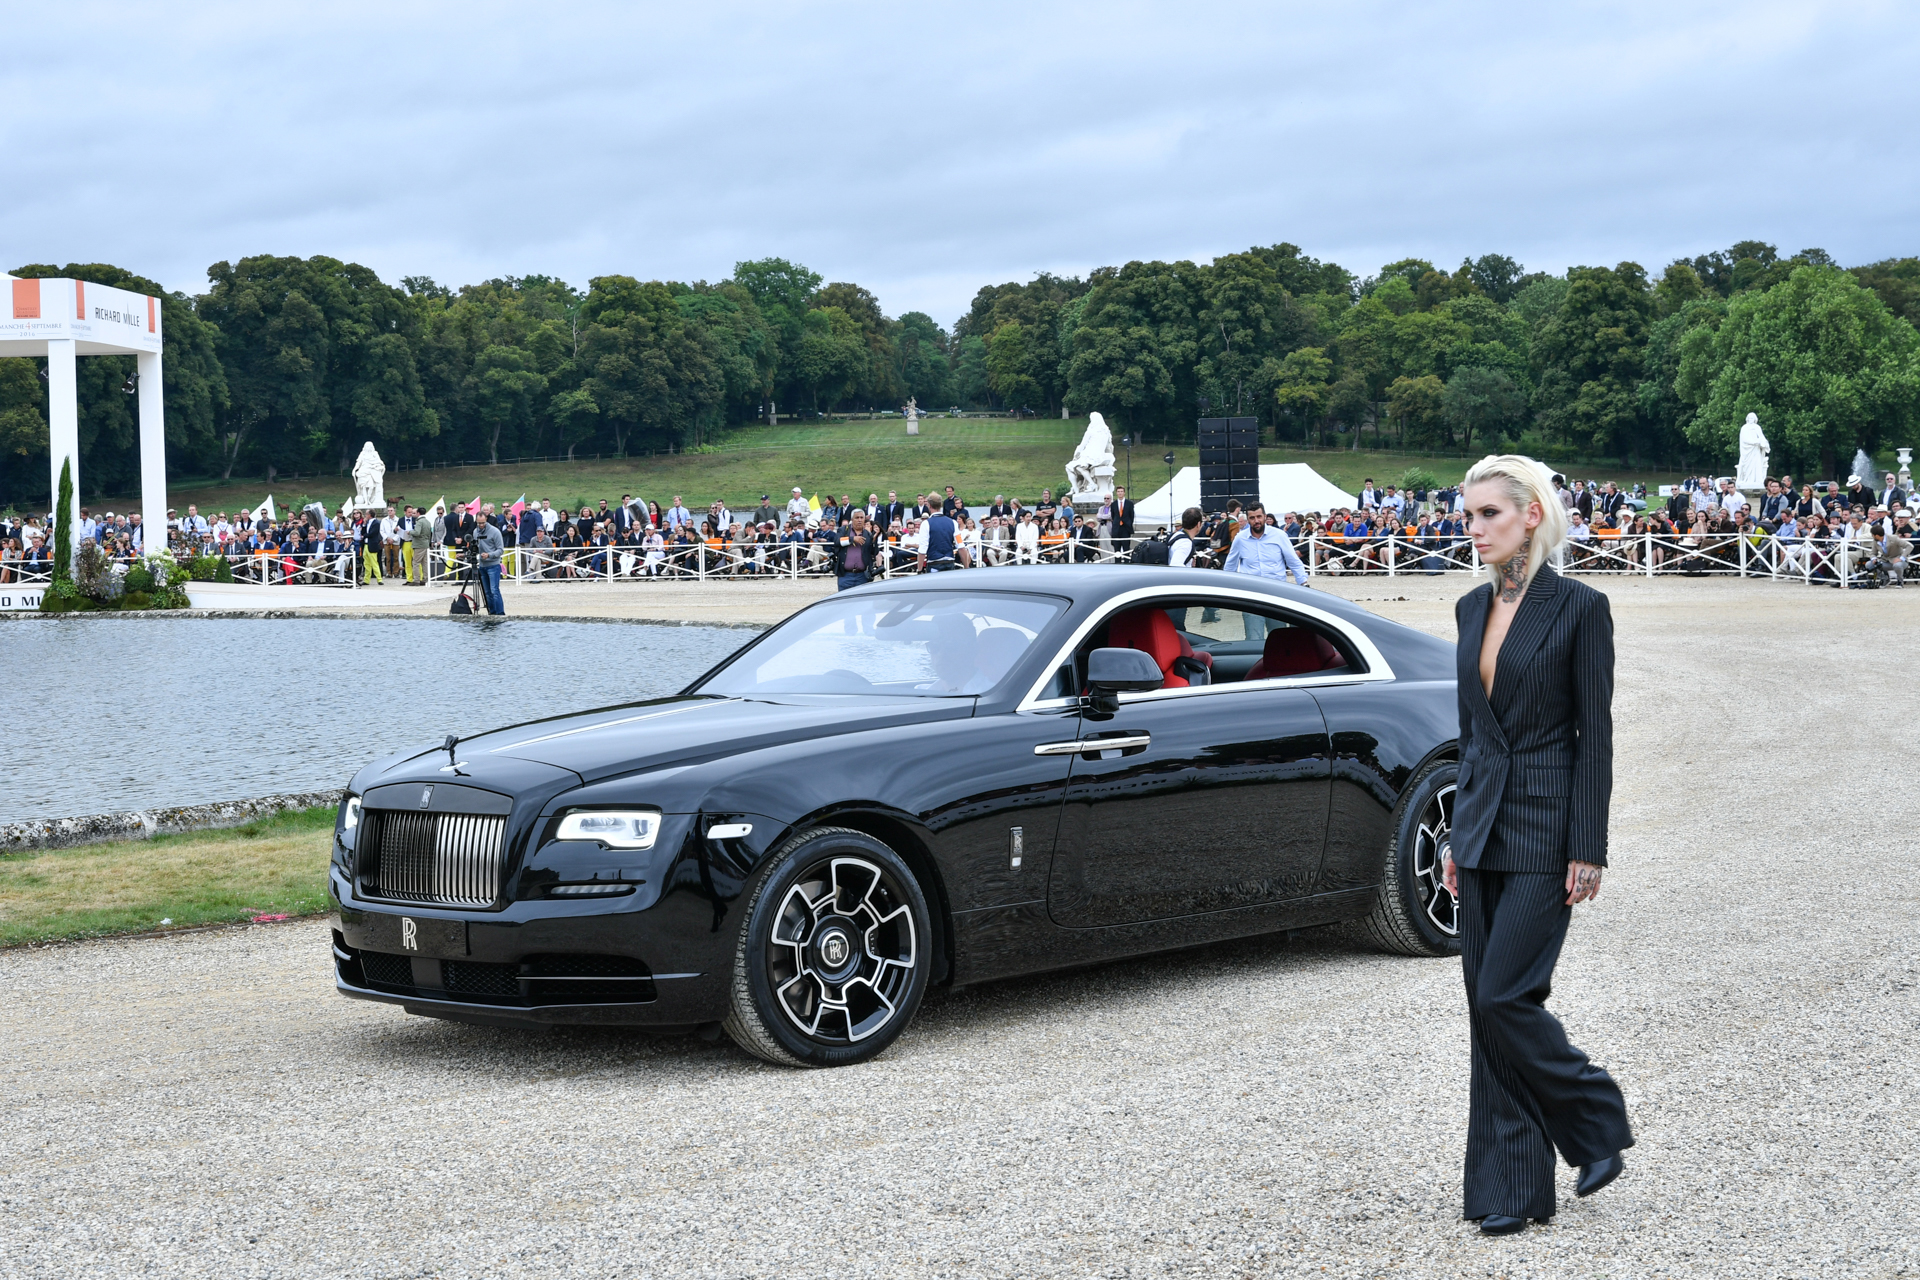 Chantilly 2016 - Rolls-Royce Wraith Black Badge - fashion Timothy Everest